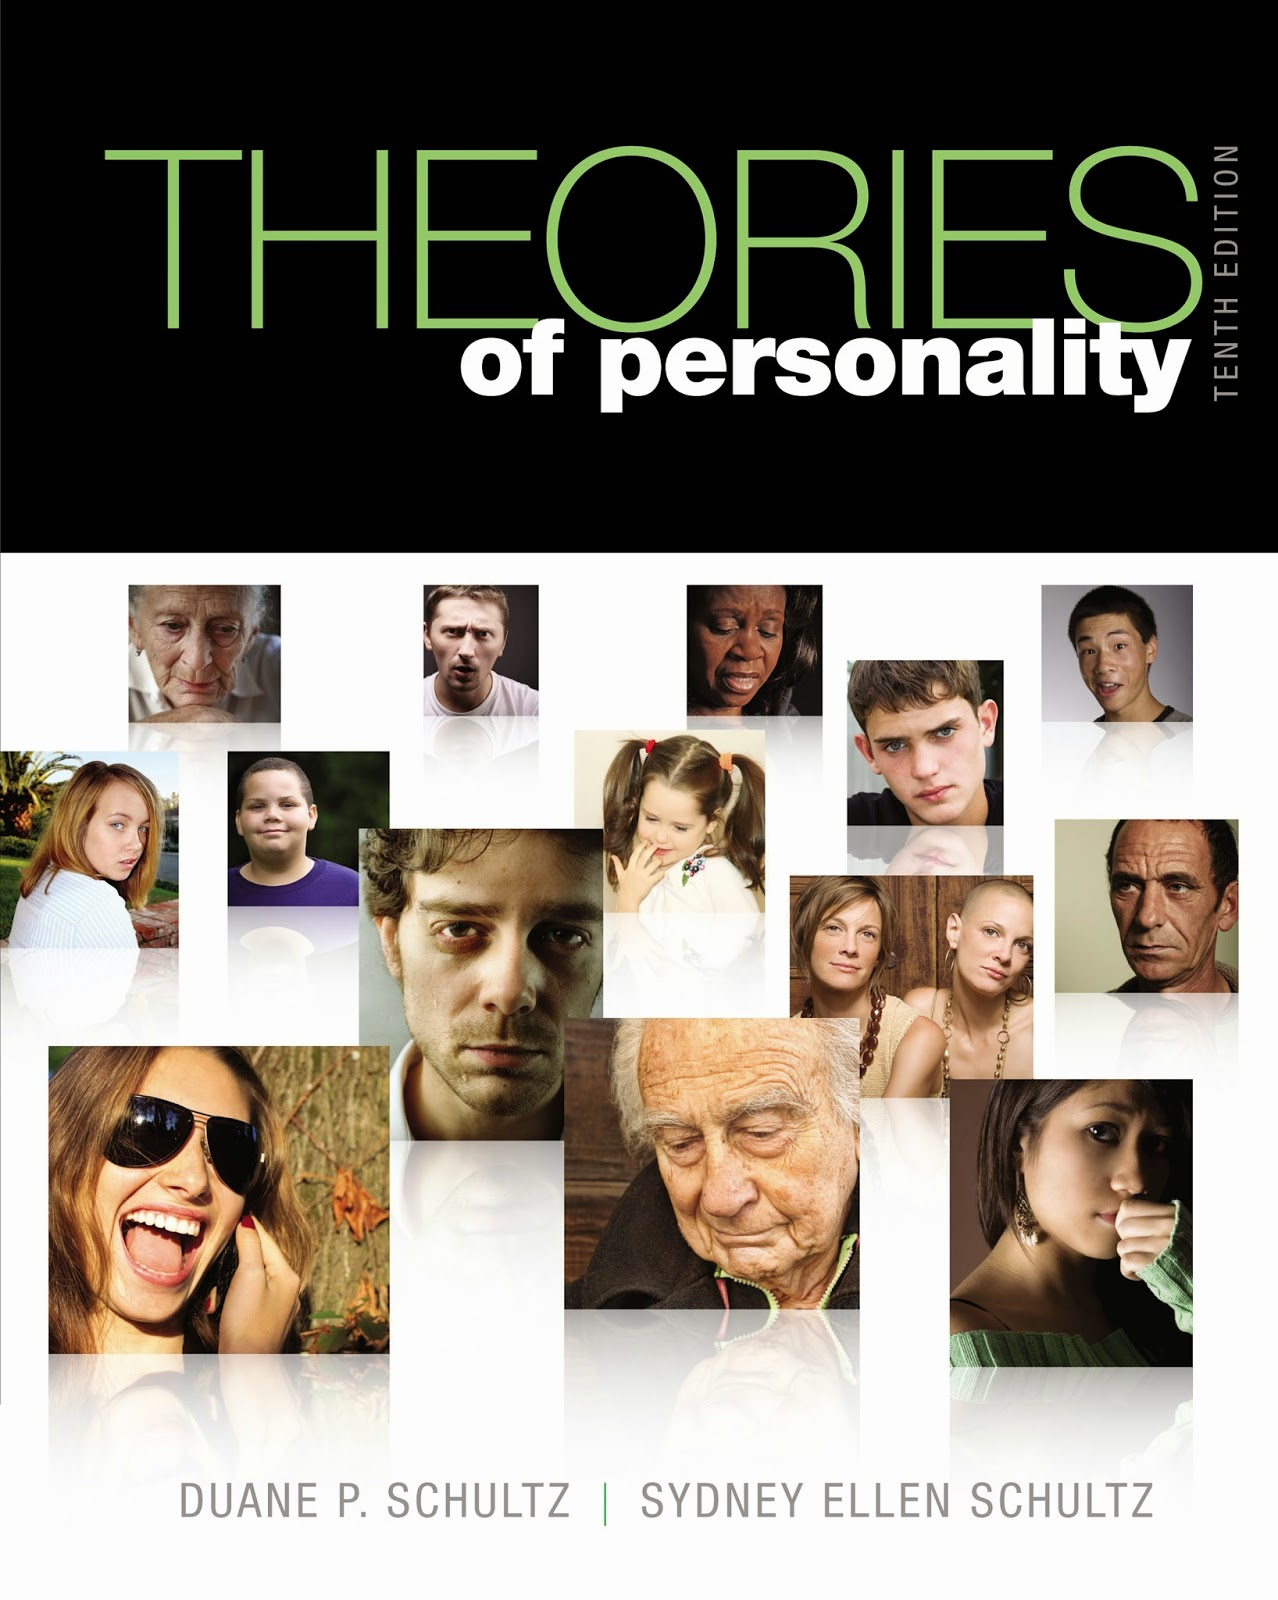 http://kingcheapebook.blogspot.com/2014/07/theories-of-personality.html